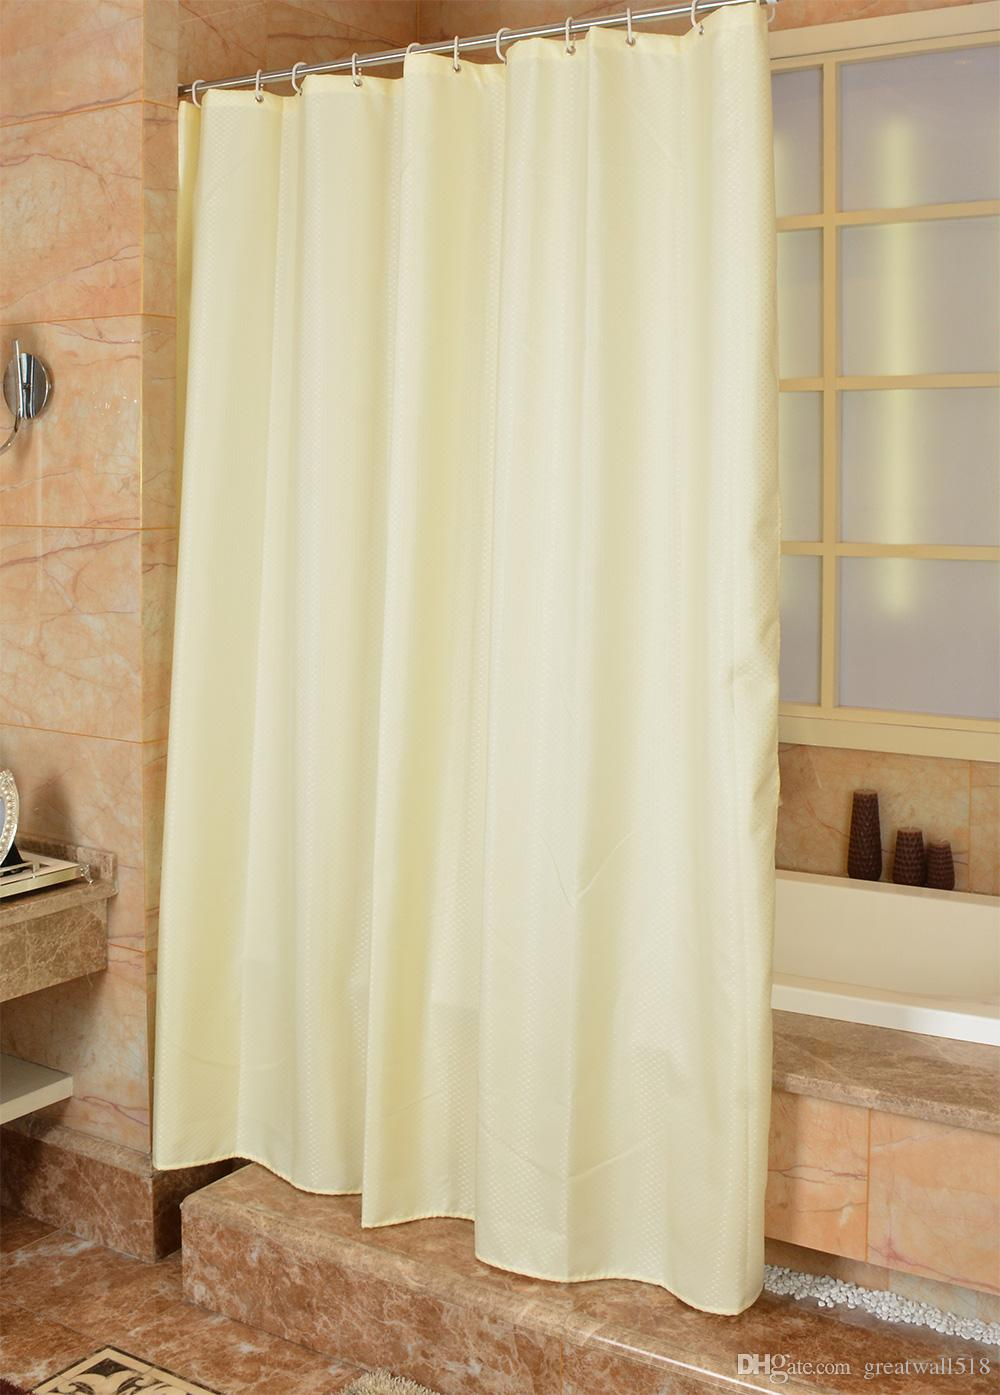 Waterproof Shower Curtain 100% Polyester mildew thick Bathroom Curtains lattice solid color Pattern with Hooks Free print wholesale LJ028